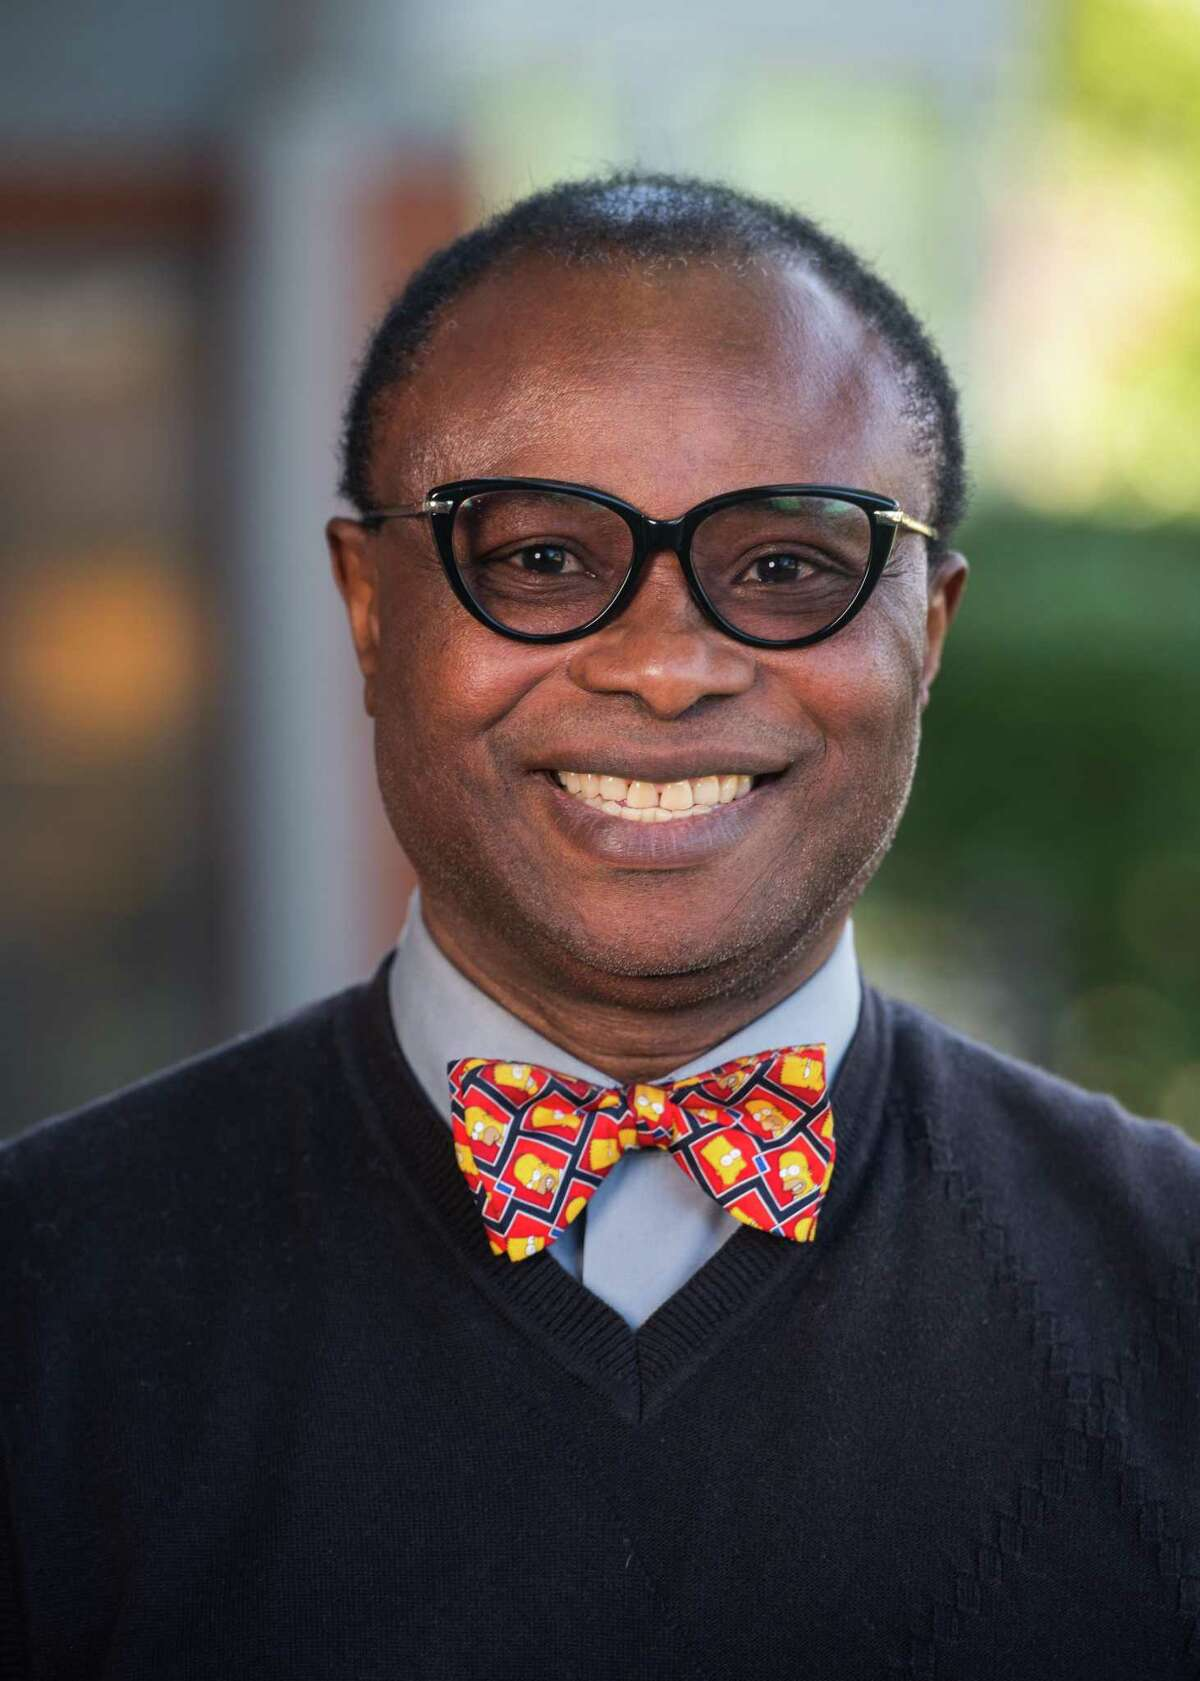 Dr. John Nwangwu, a professor of public health at Southern Connecticut State University